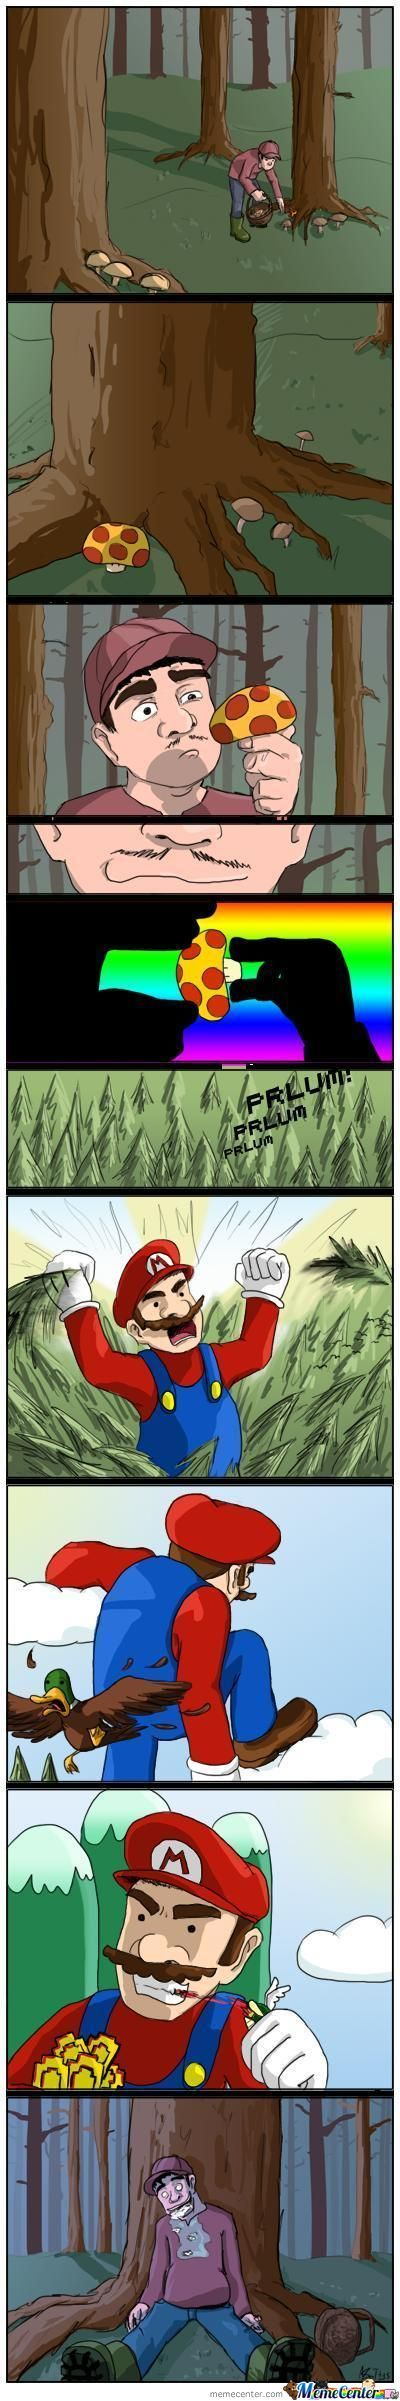 The Painful Story About Super Mario Bros